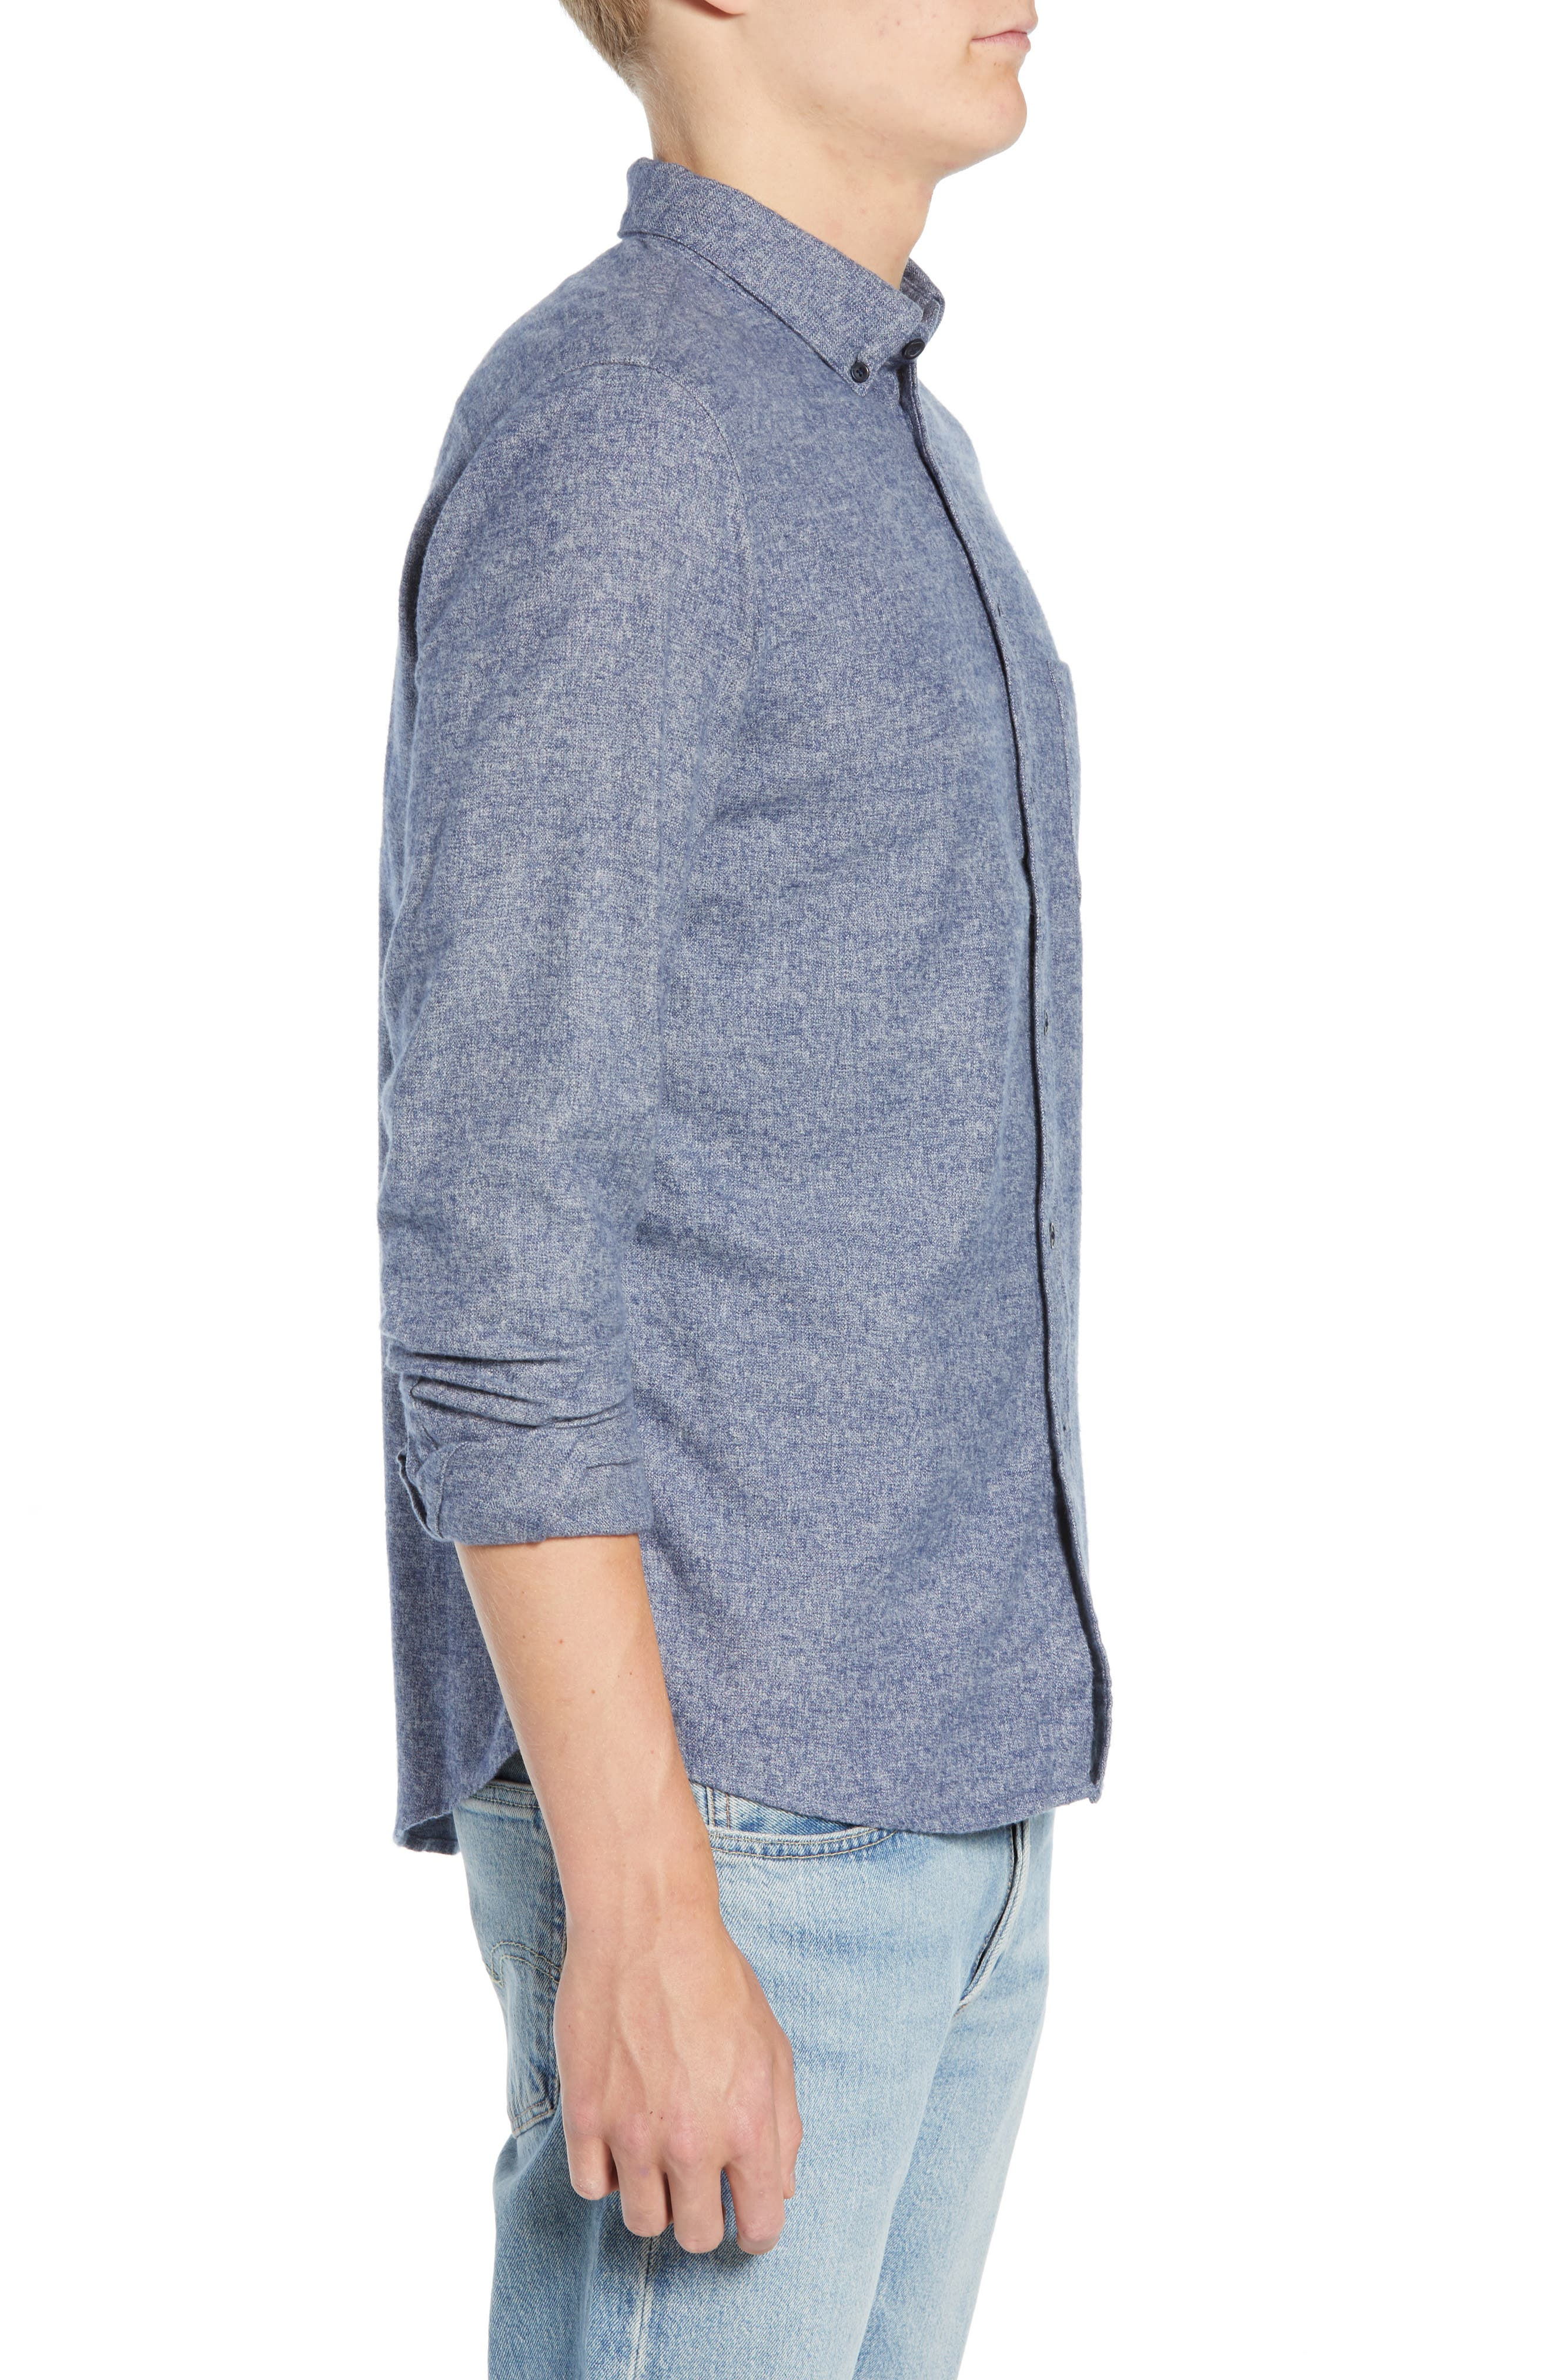 Levi's<sup>®</sup> Made & Crafted Standard Regular Fit Twill Shirt,                             Alternate thumbnail 4, color,                             400